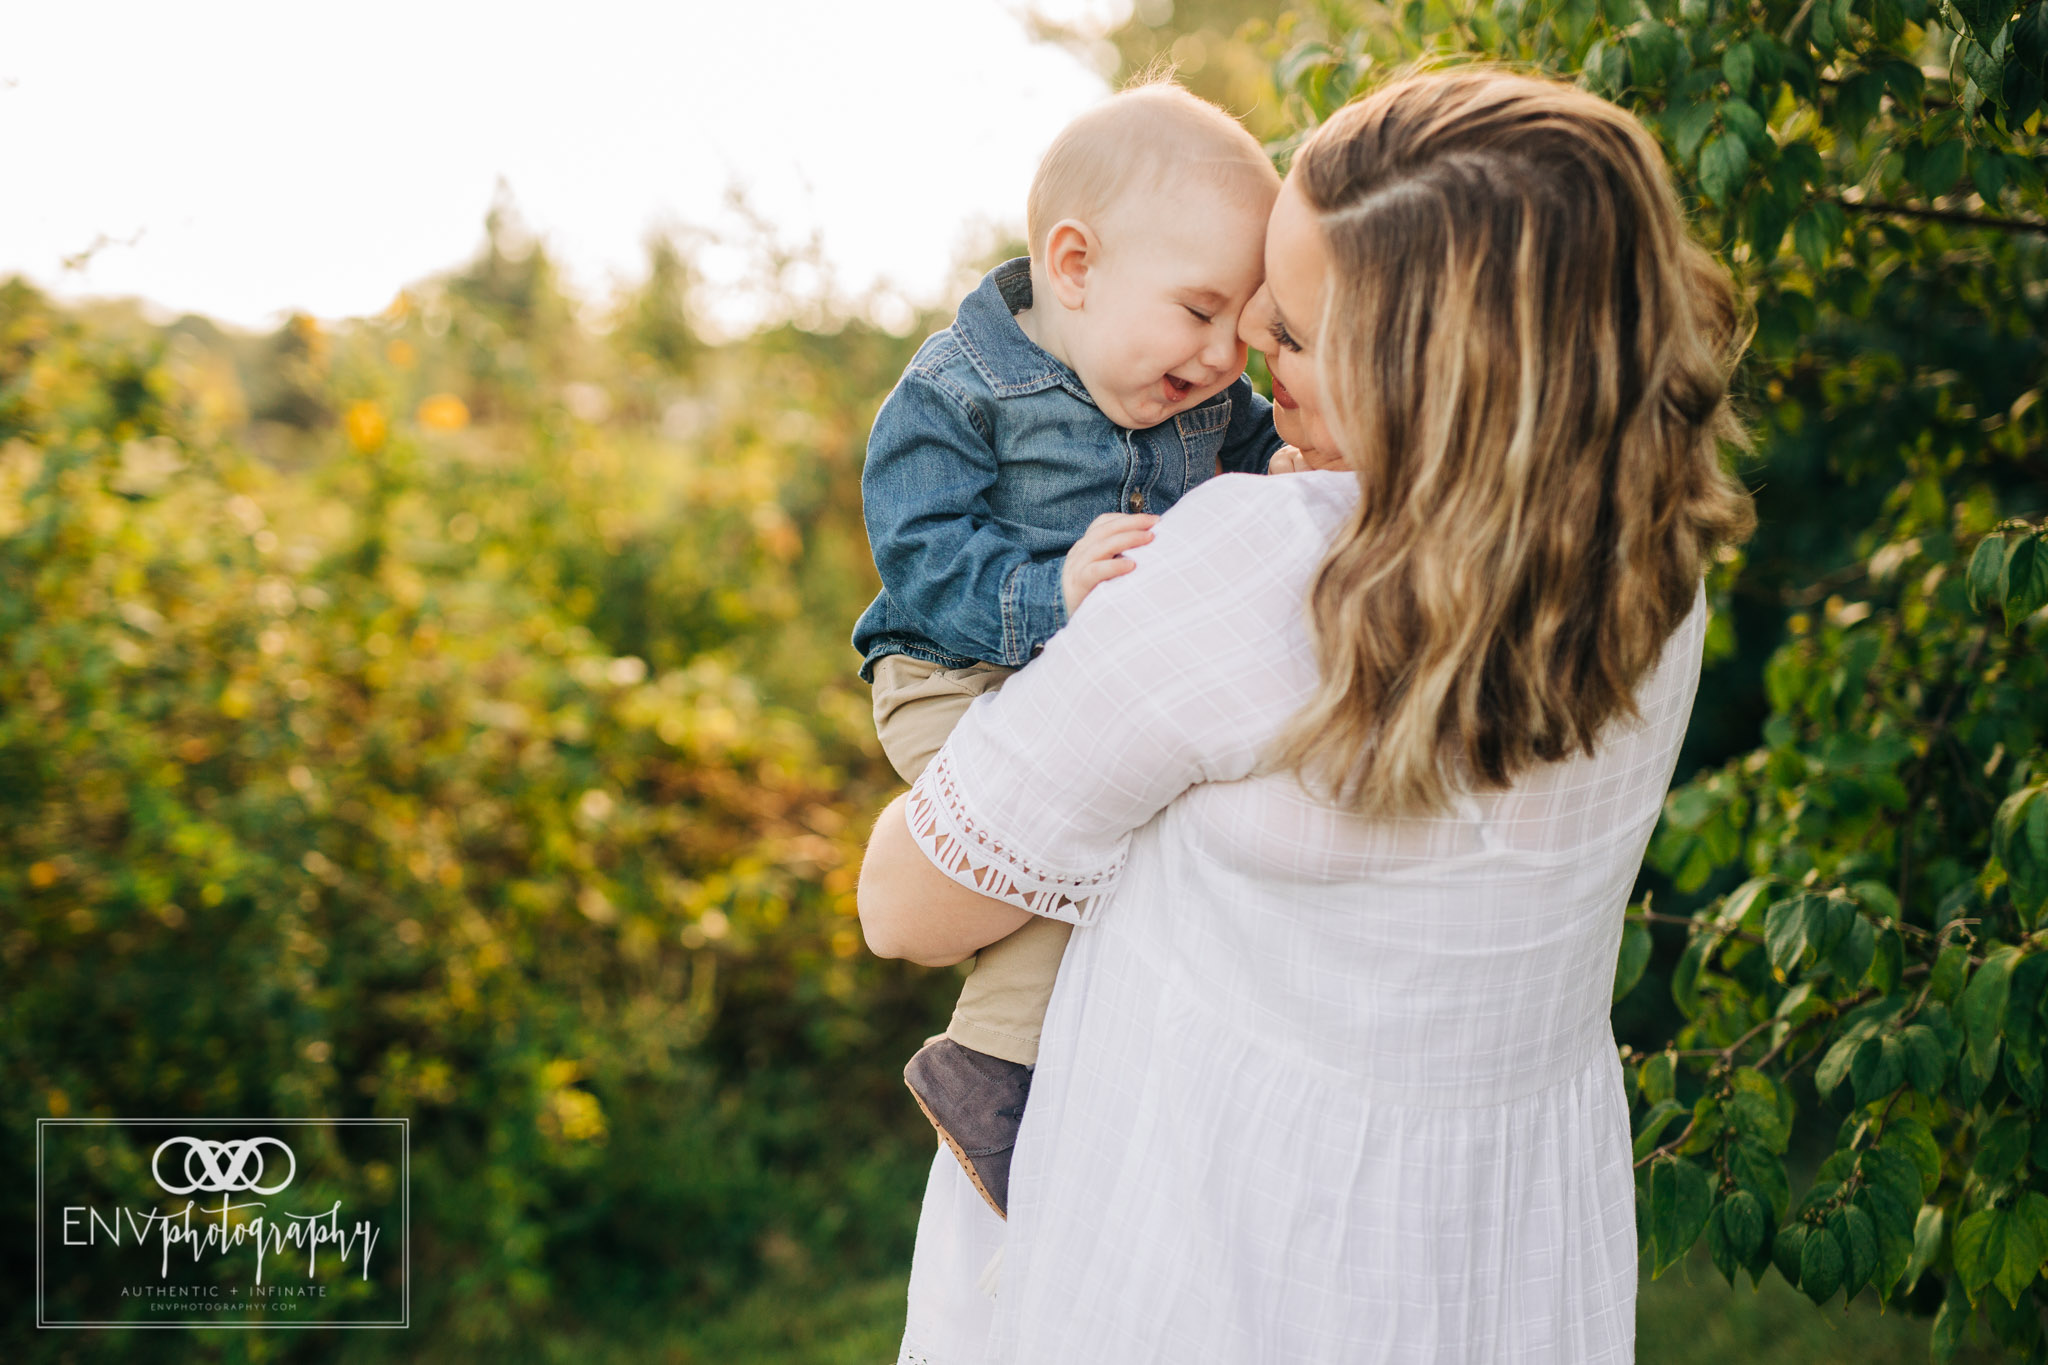 mount vernon columbus ohio family photographer env photography (2).jpg